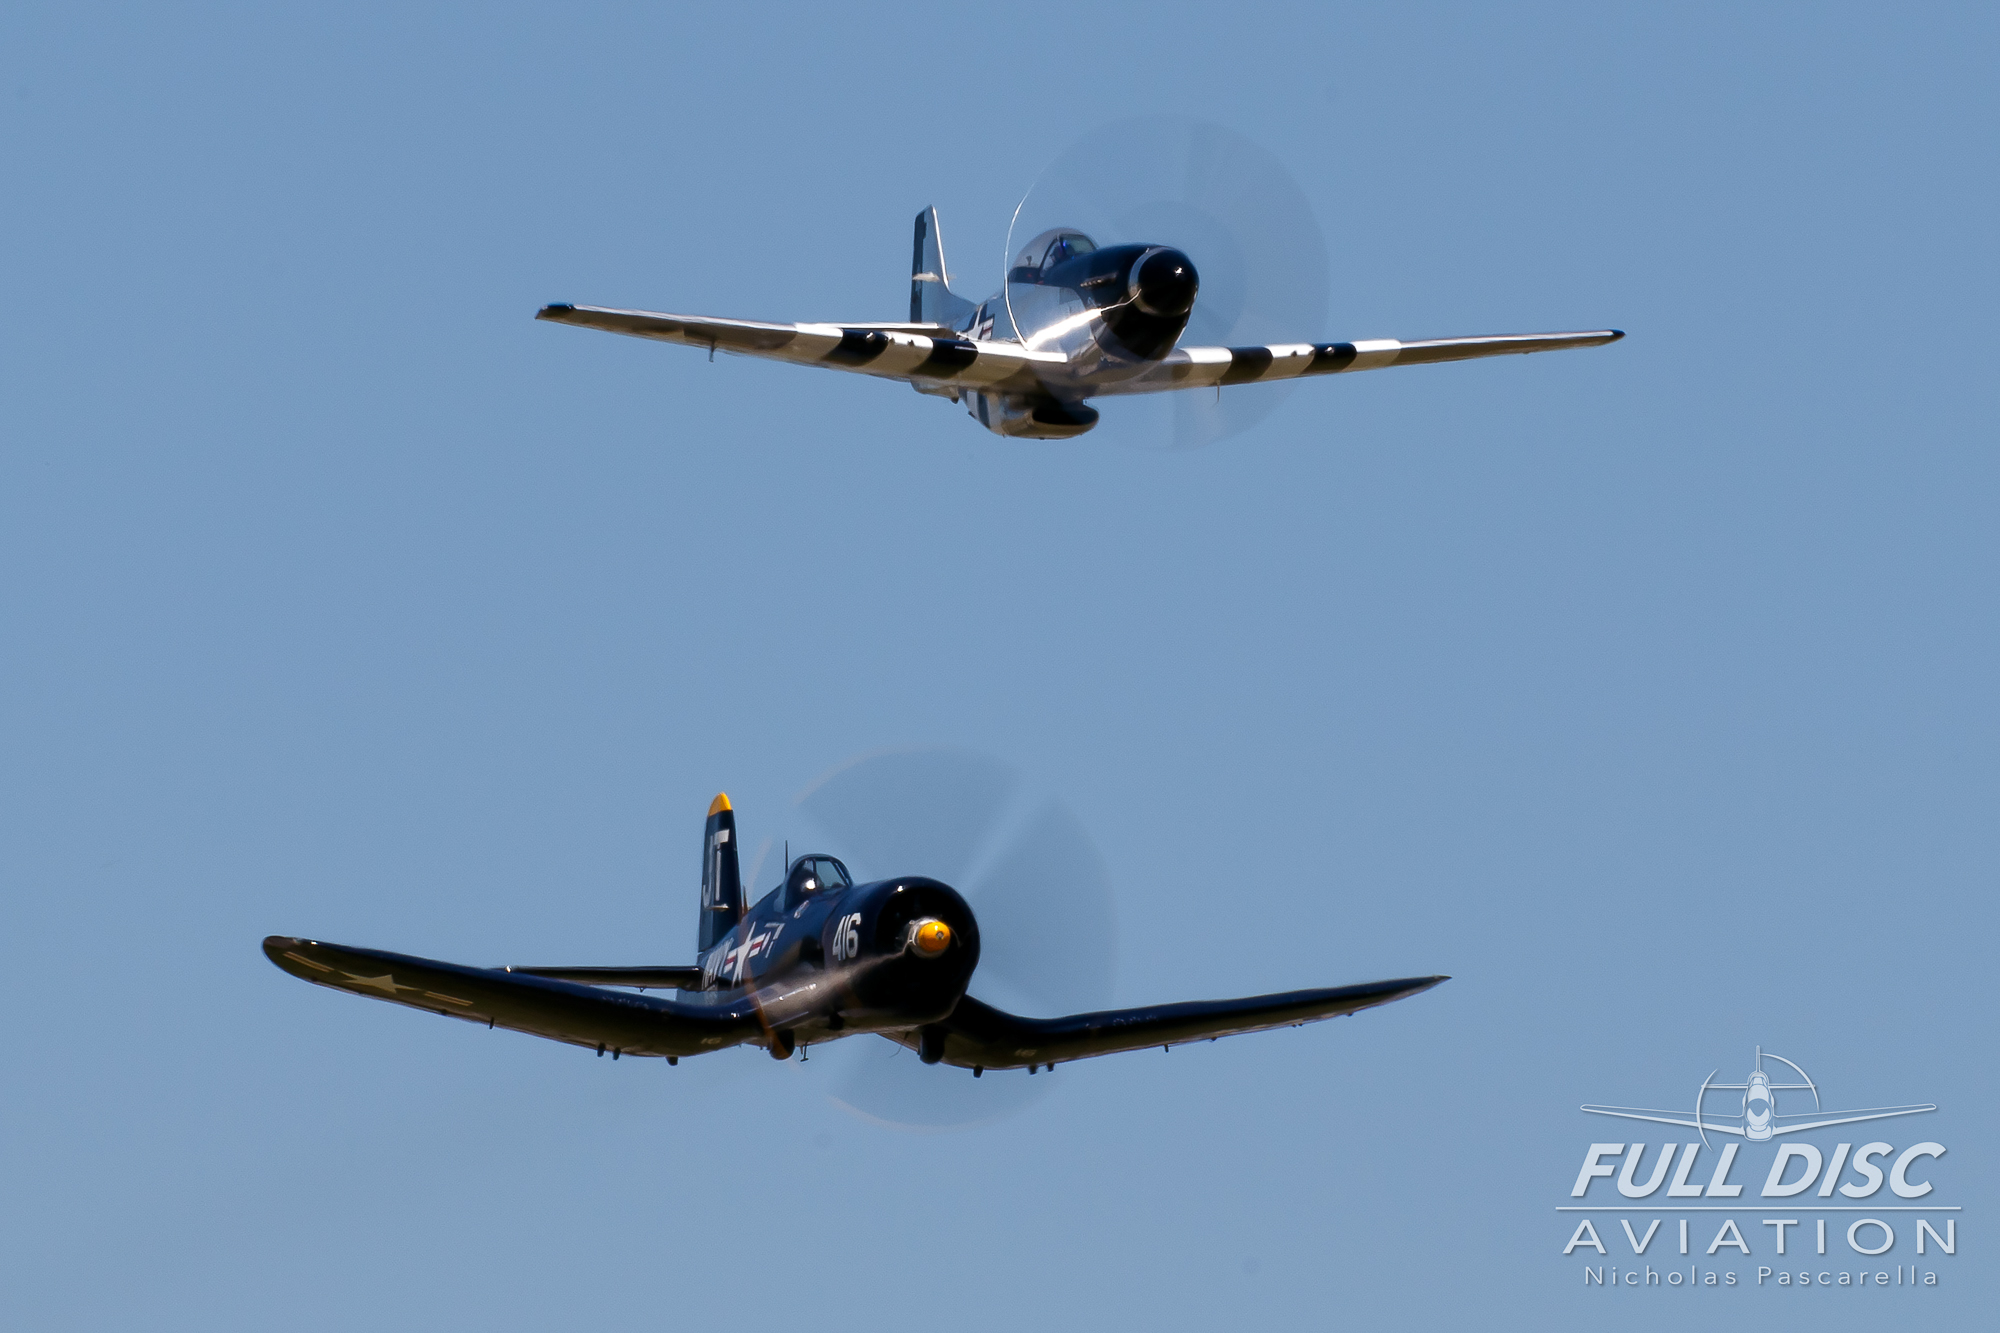 classof45_corsair_mustang_mcasbeaufort_nicholaspascarella_fulldiscavation_aviation_airshow.jpg